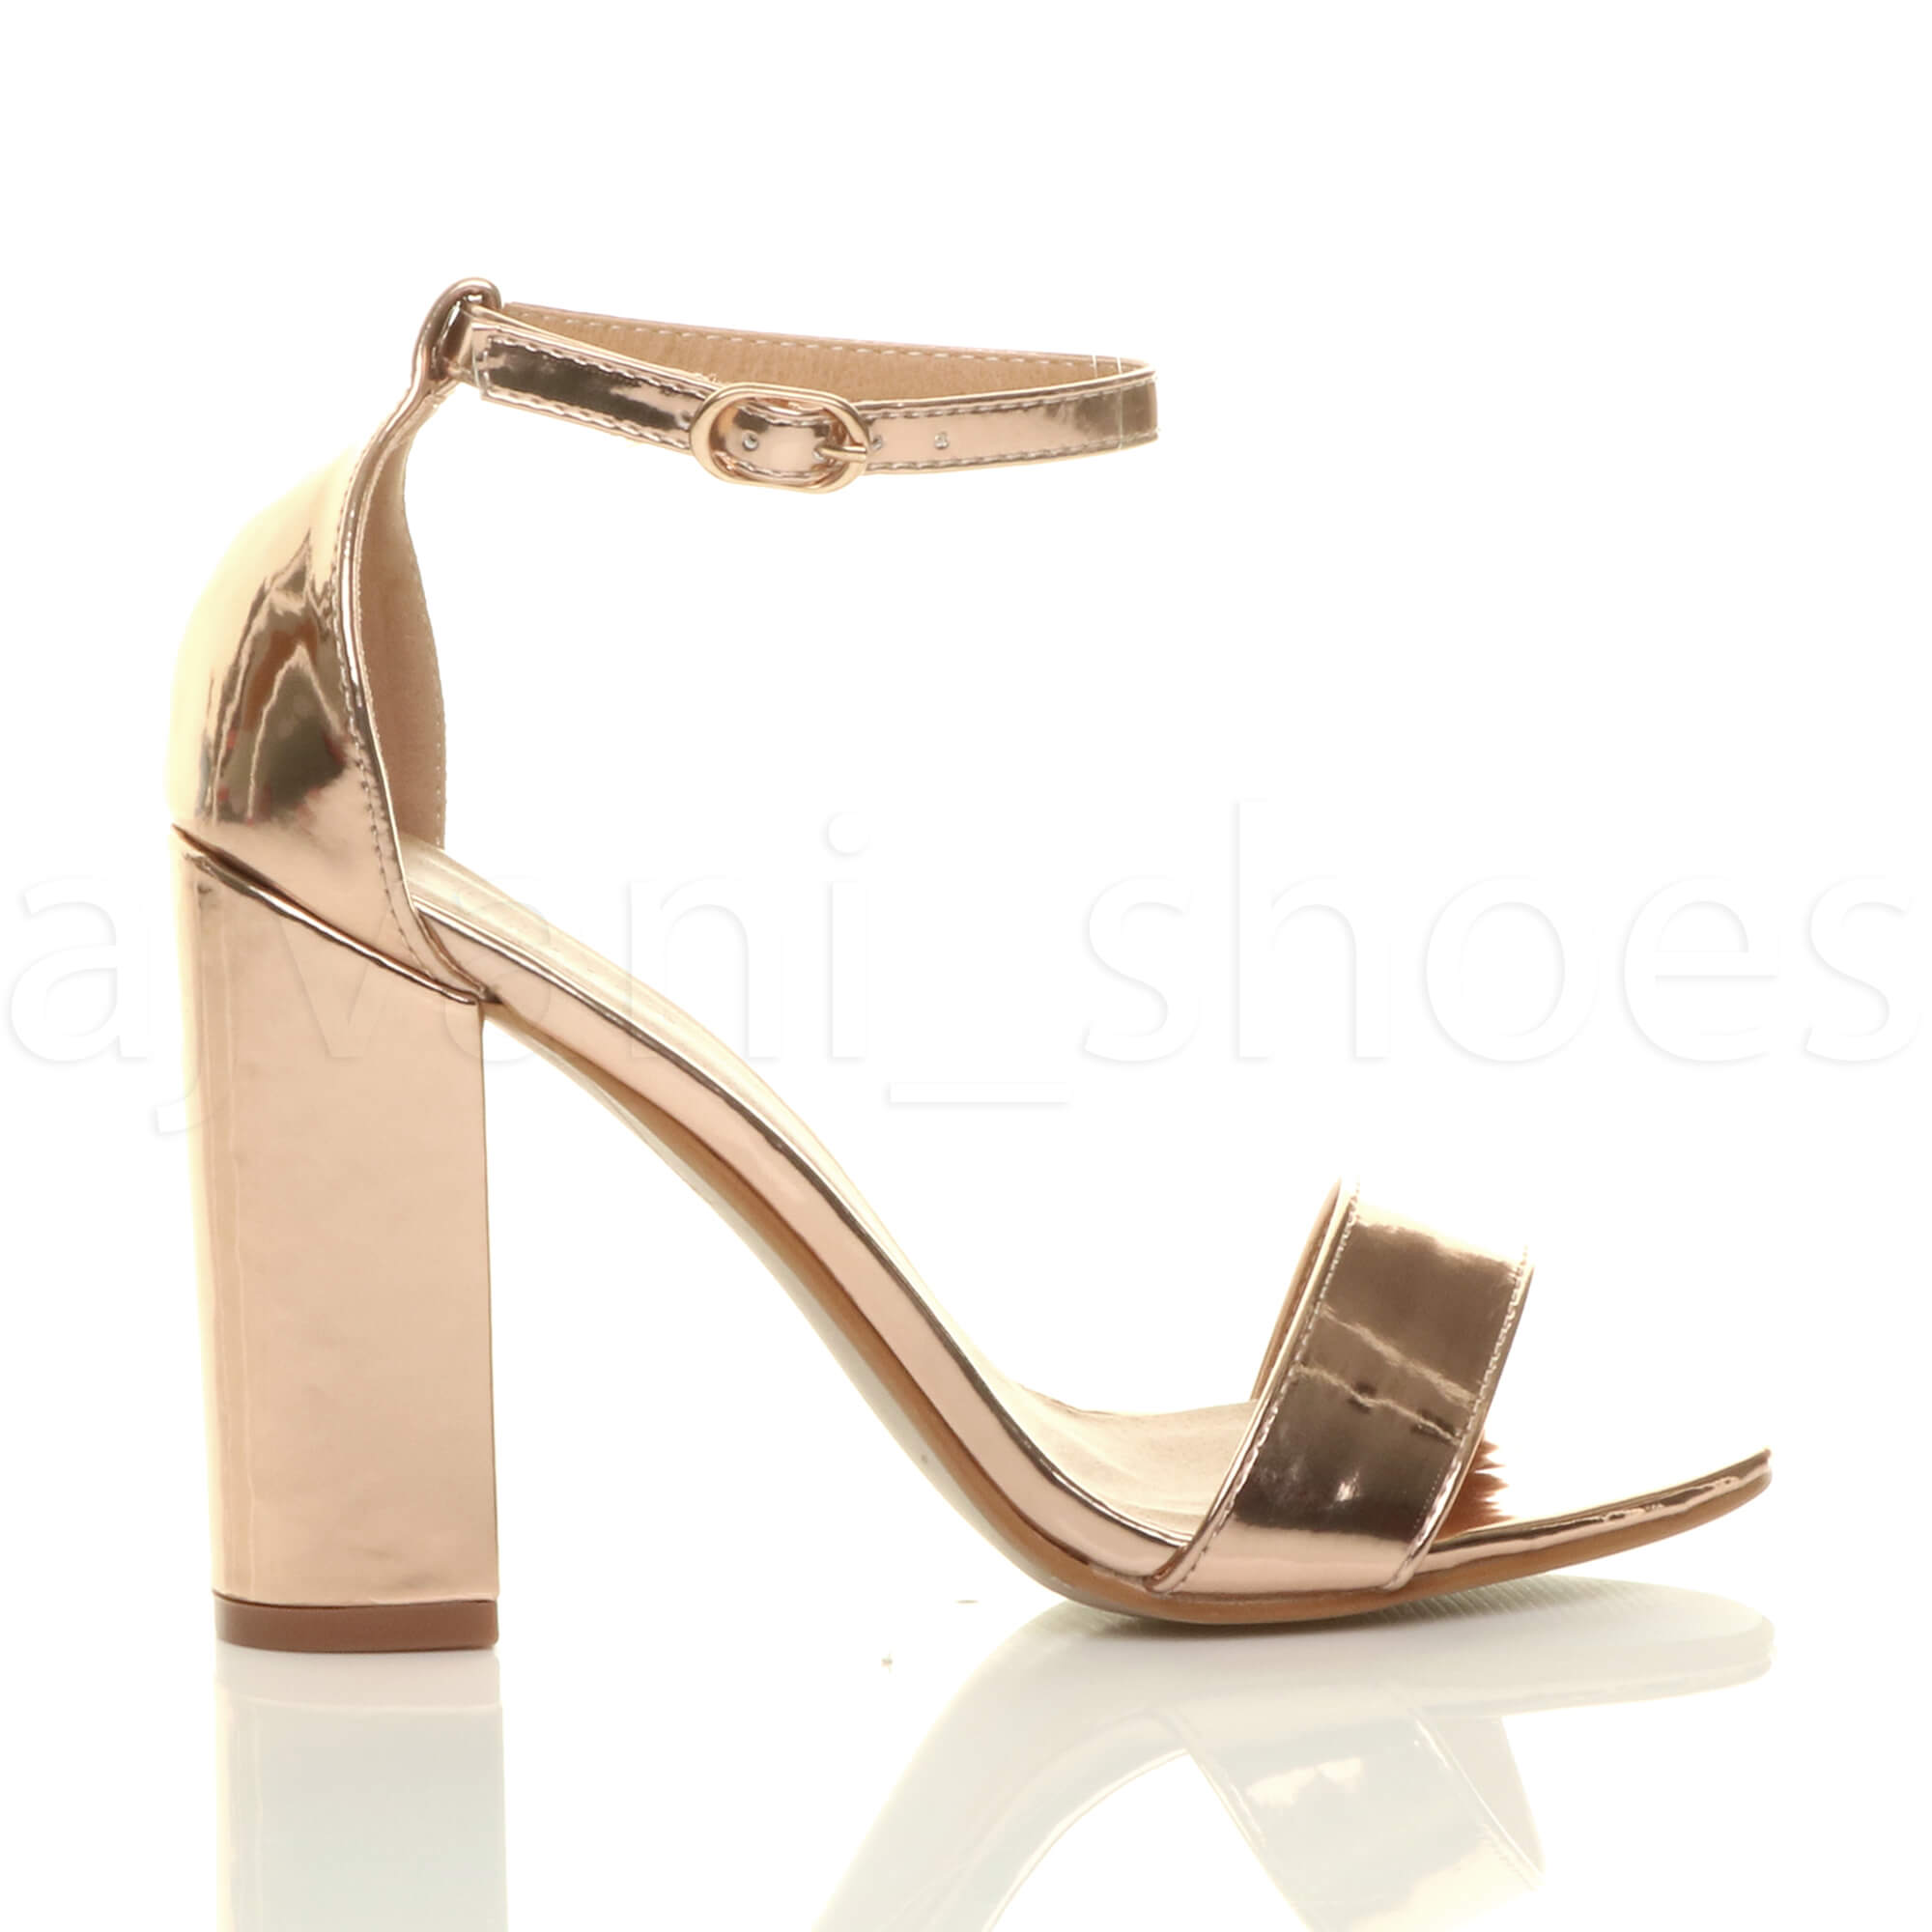 WOMENS-LADIES-BLOCK-HIGH-HEEL-ANKLE-STRAP-PEEP-TOE-STRAPPY-SANDALS-SHOES-SIZE thumbnail 140